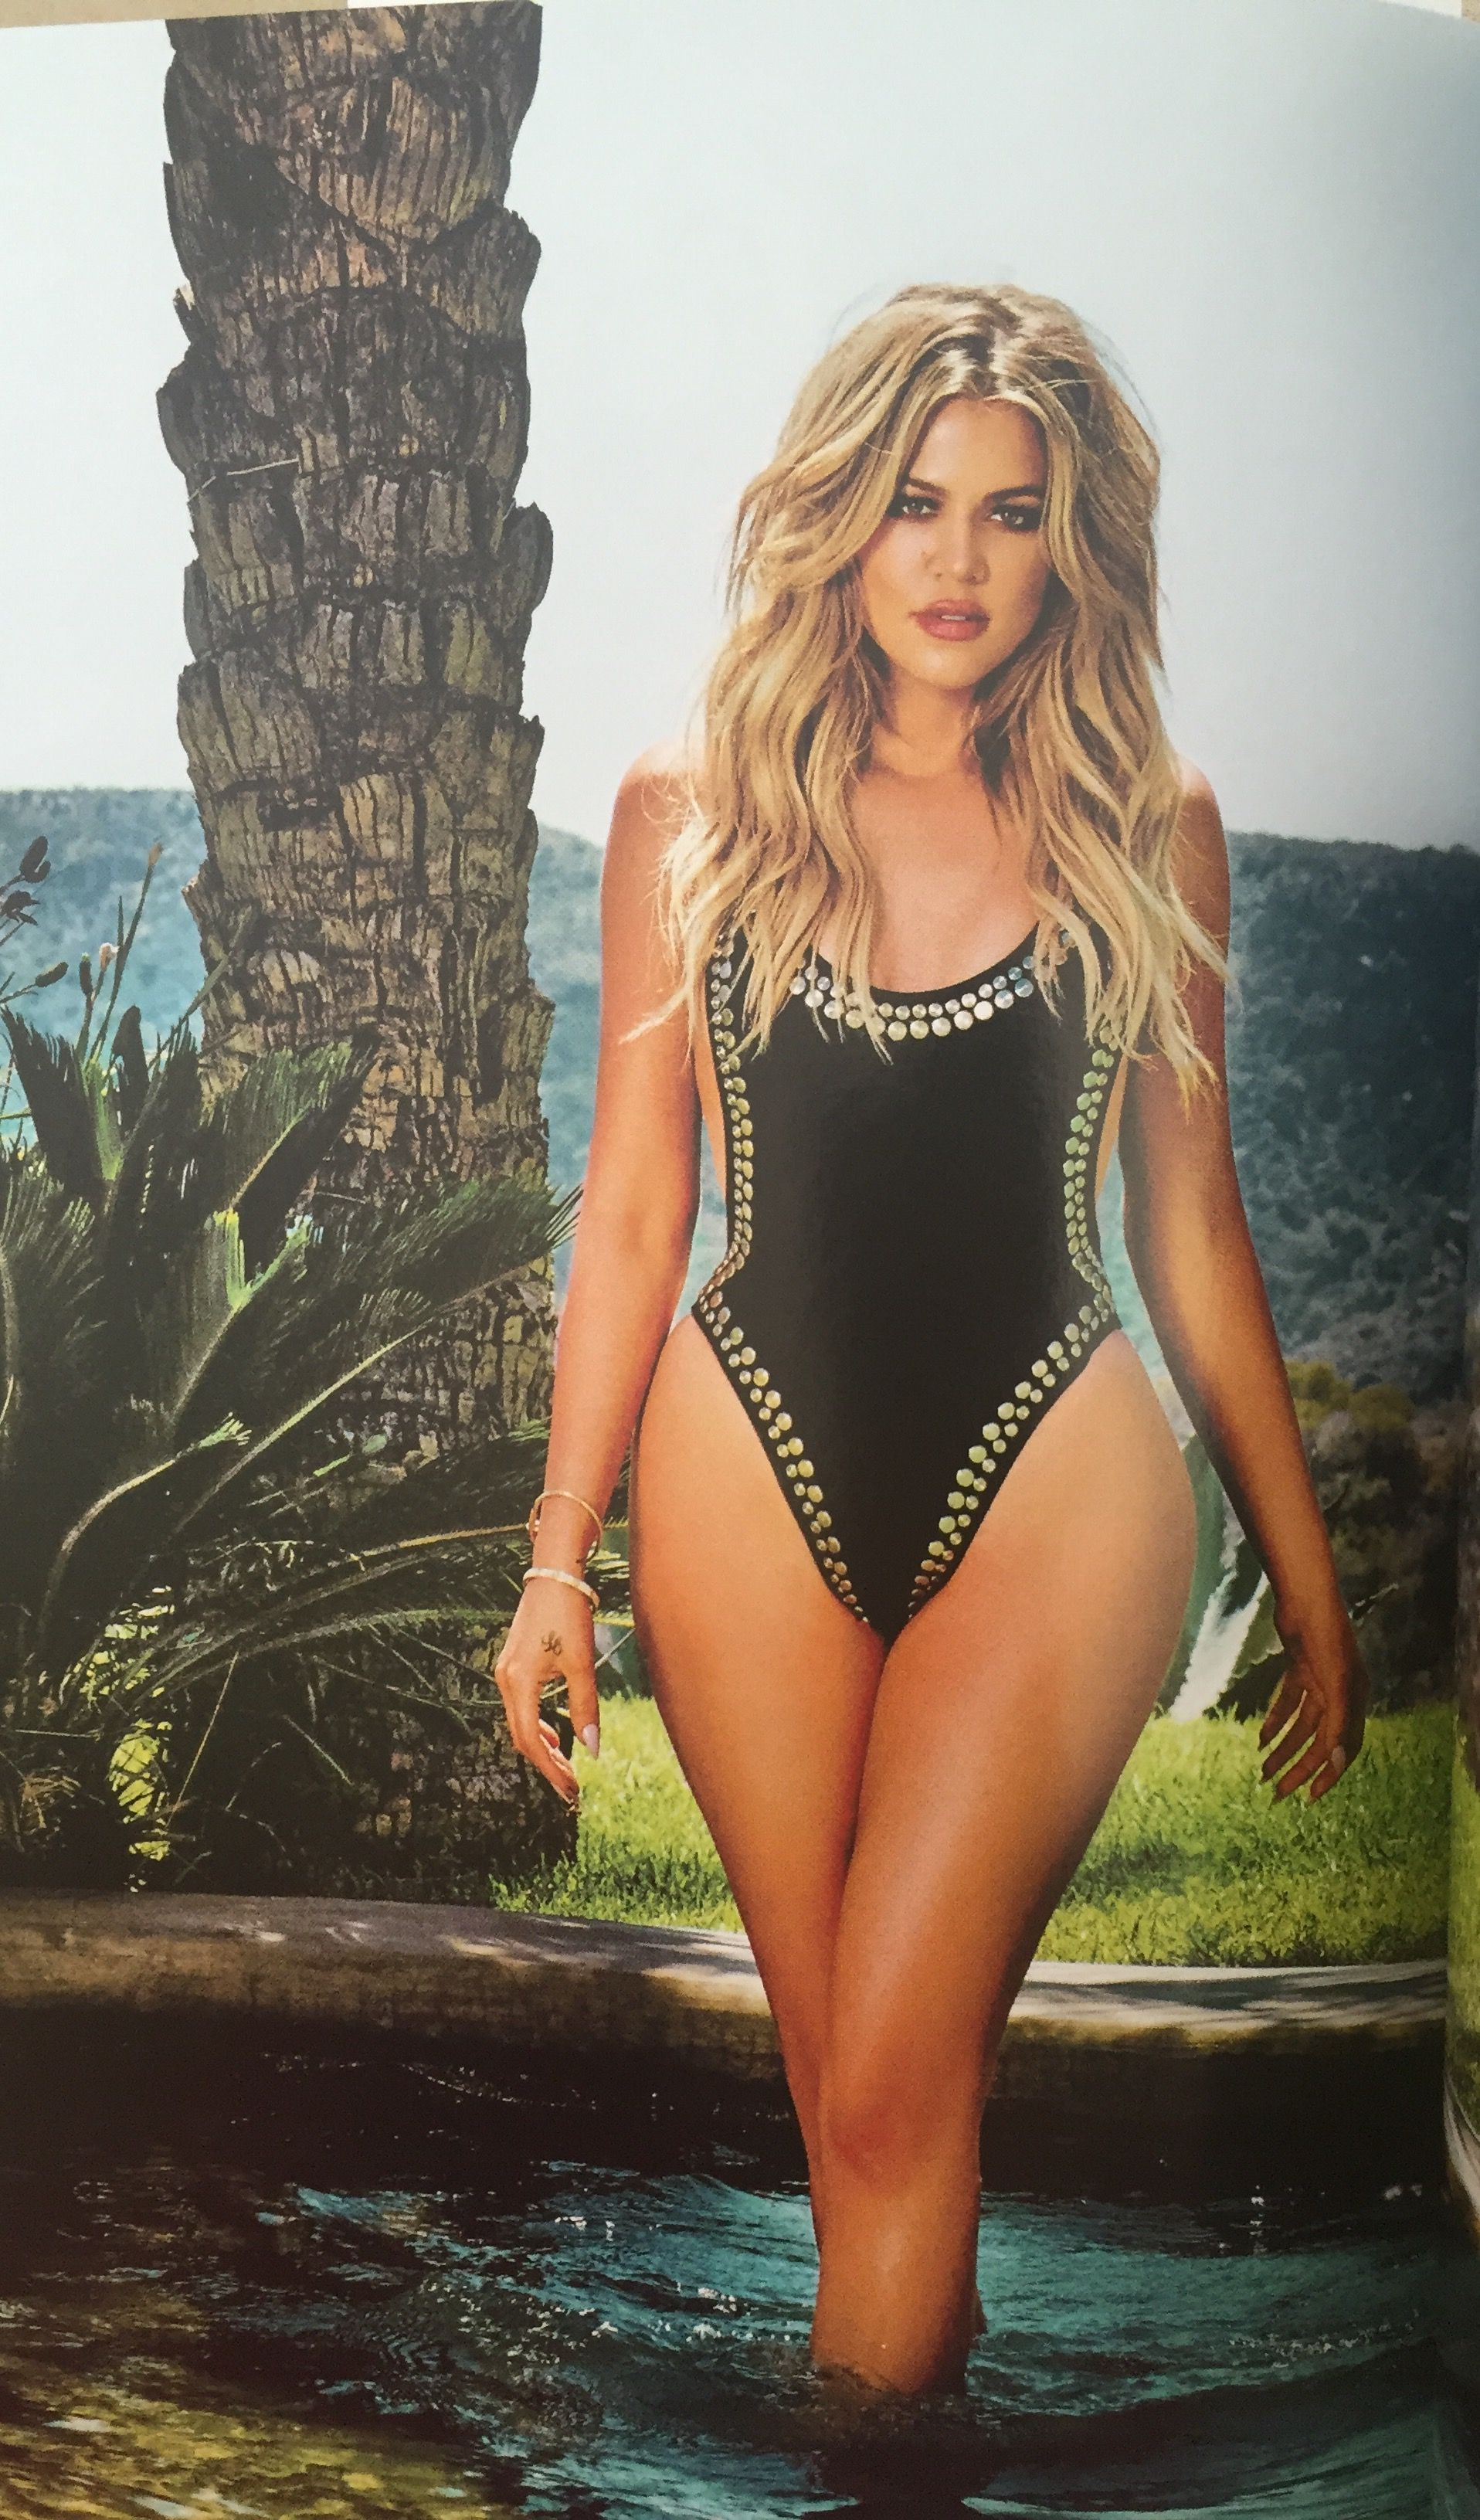 """cccb8c6a606 If you look closely, there is something different about Khloe Kardashian on  the cover of her new health and fitness book, """"Strong Looks Better Naked."""